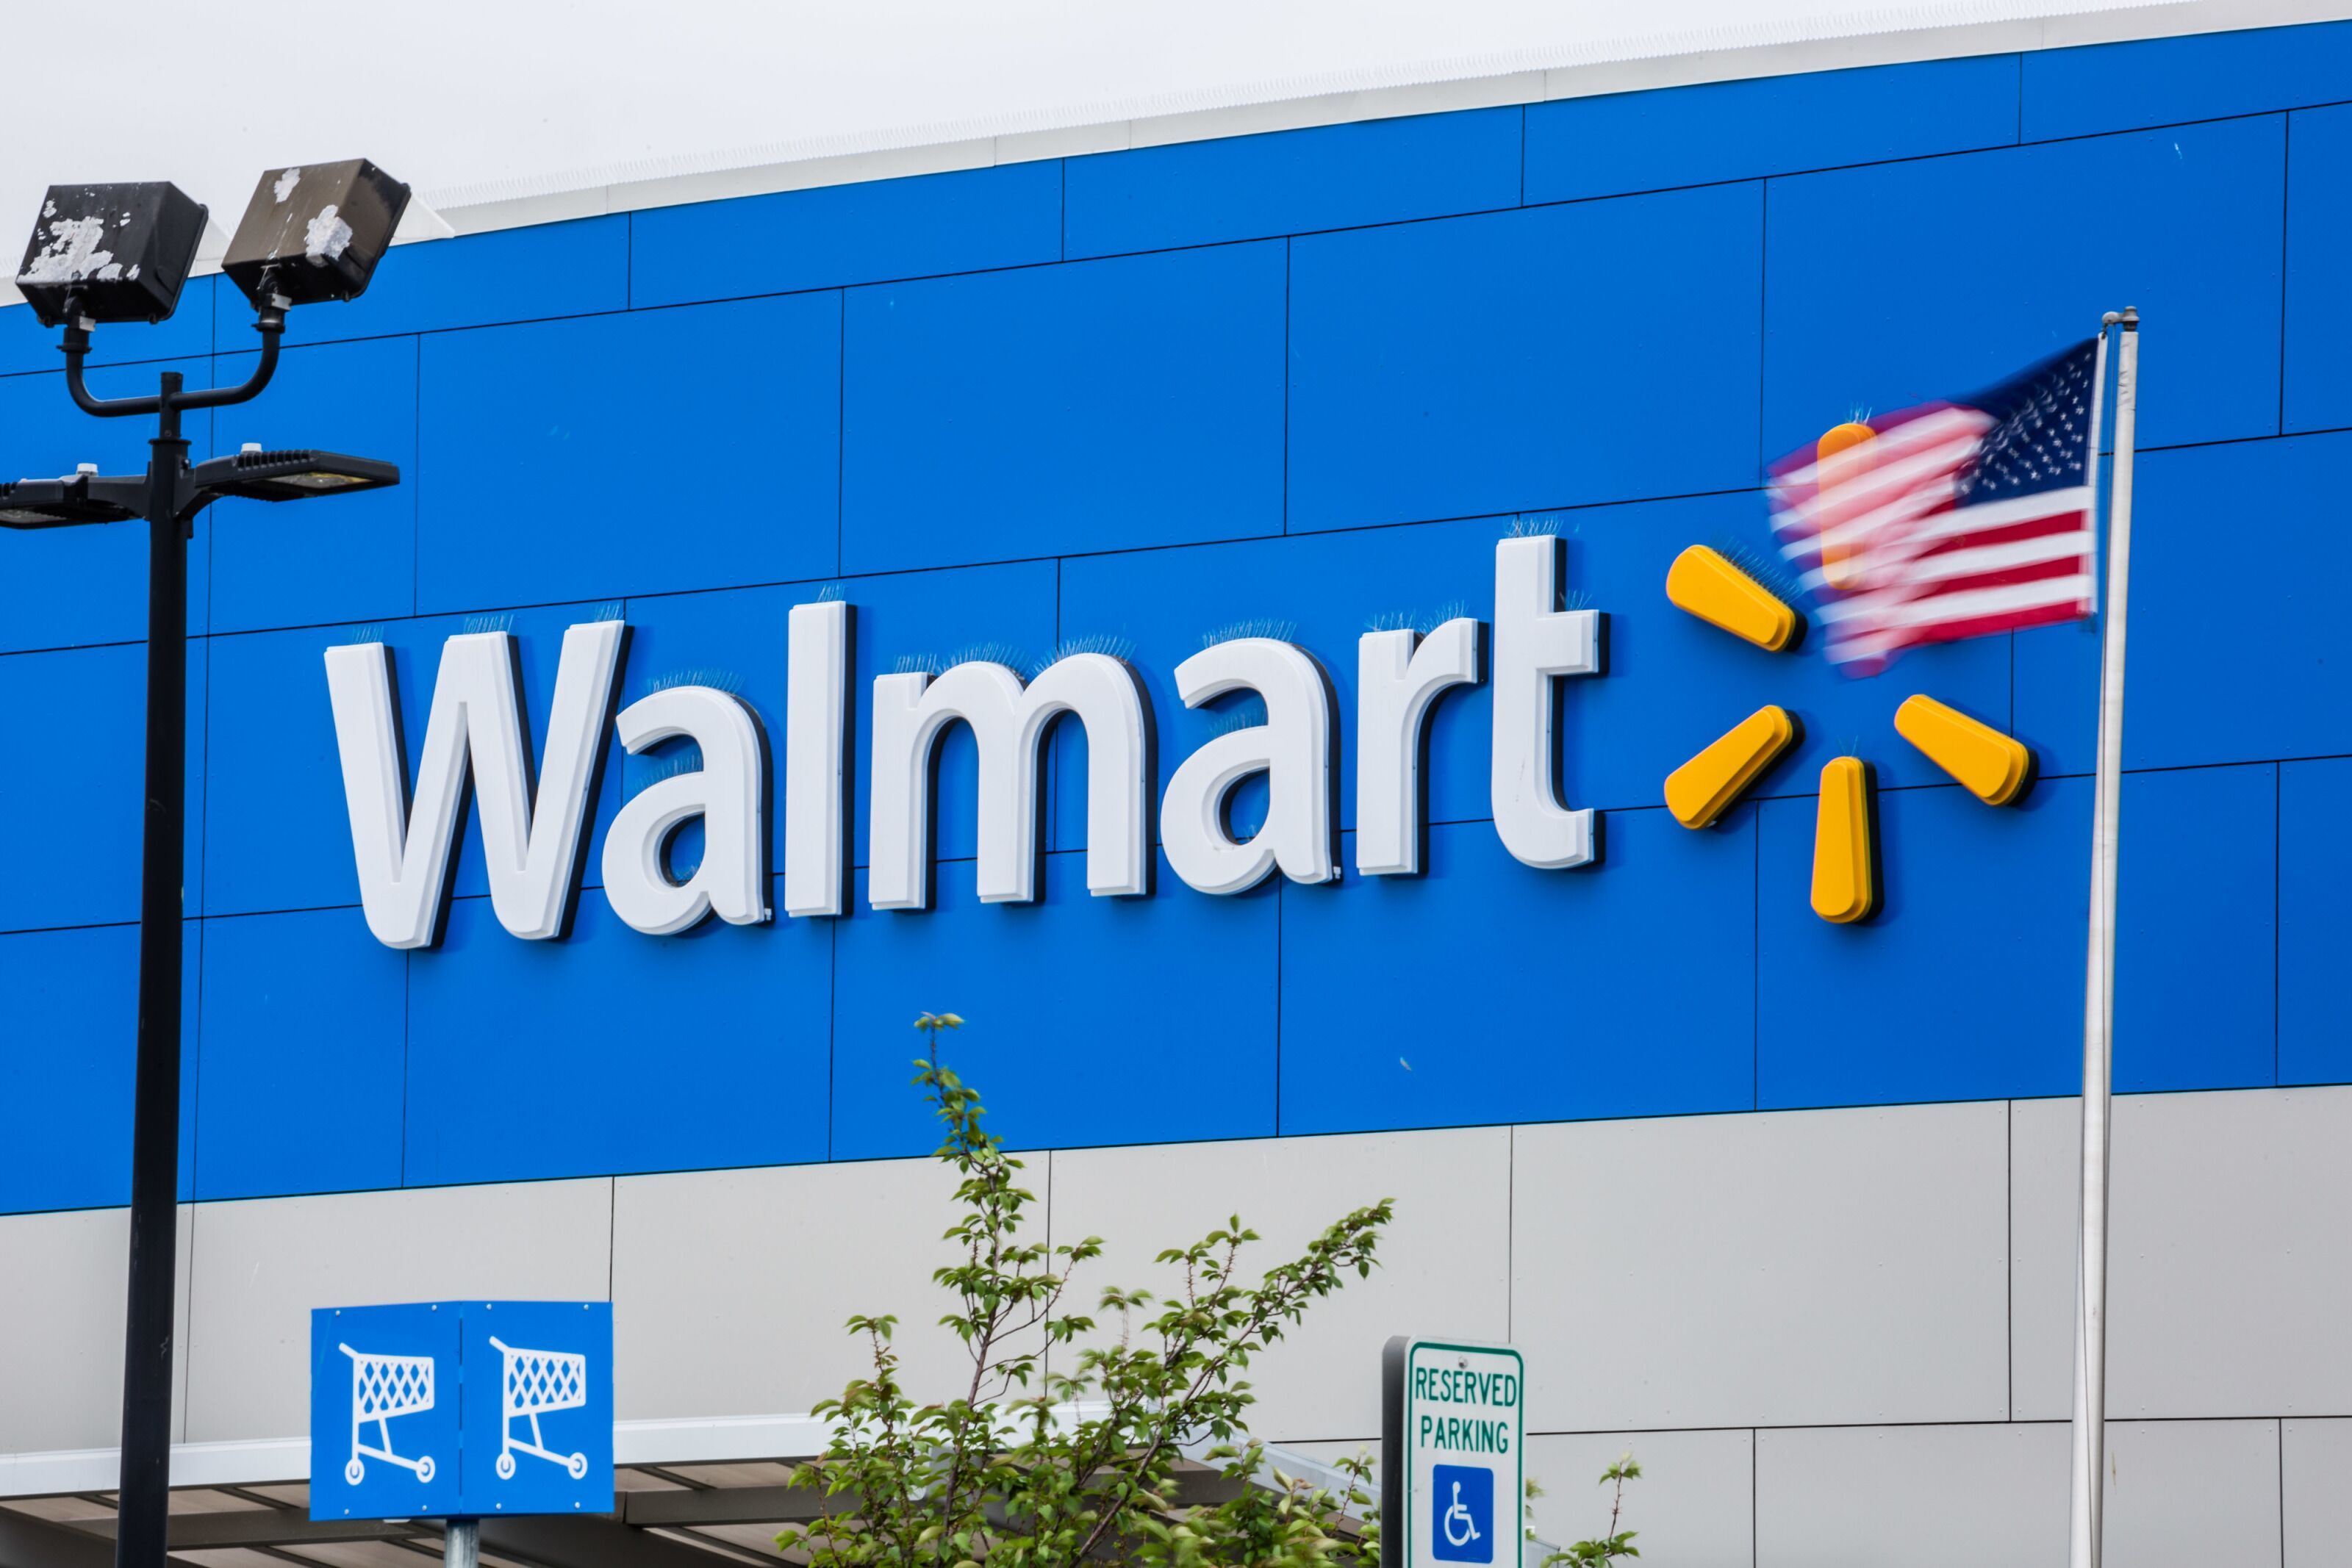 Jul 03,  · The 4th of July is one of America's most patriotic holidays, but will everyone be able to visit and shop at Walmart? July 4th is always a holiday Americans look forward to. It represents a day.